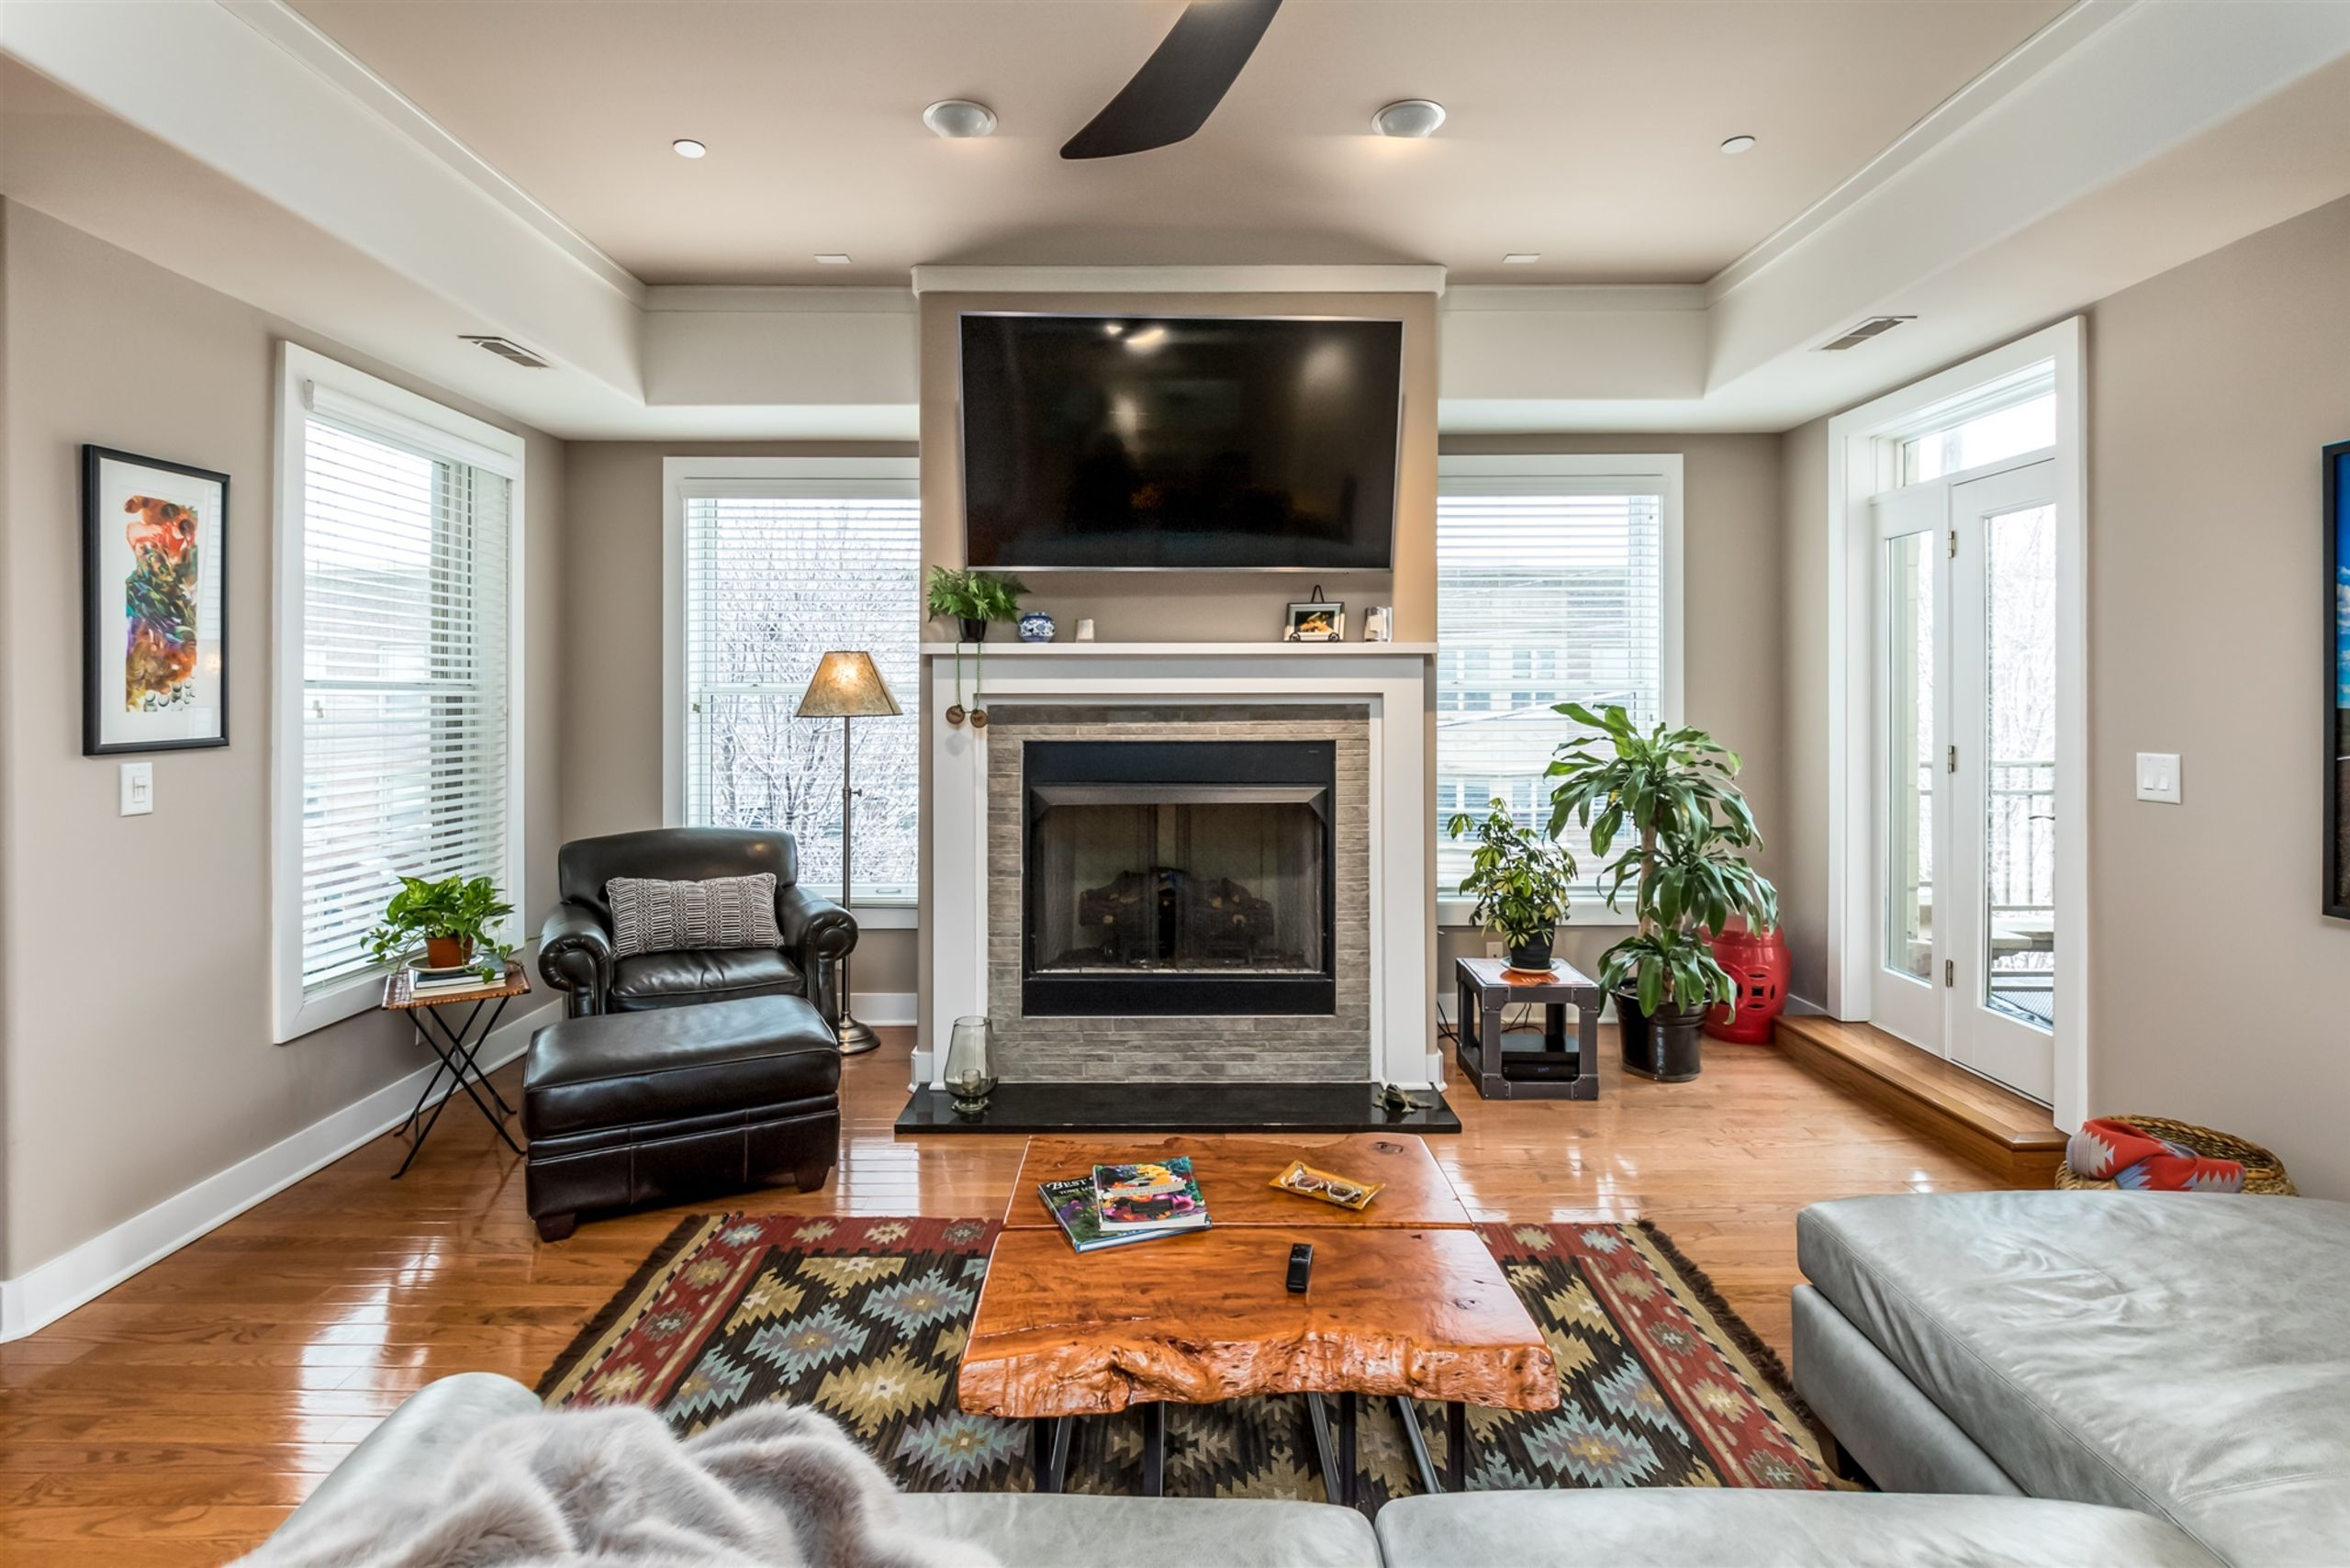 FOR SALE IN DOWNTOWN INDY- 1 LEVEL CONDO